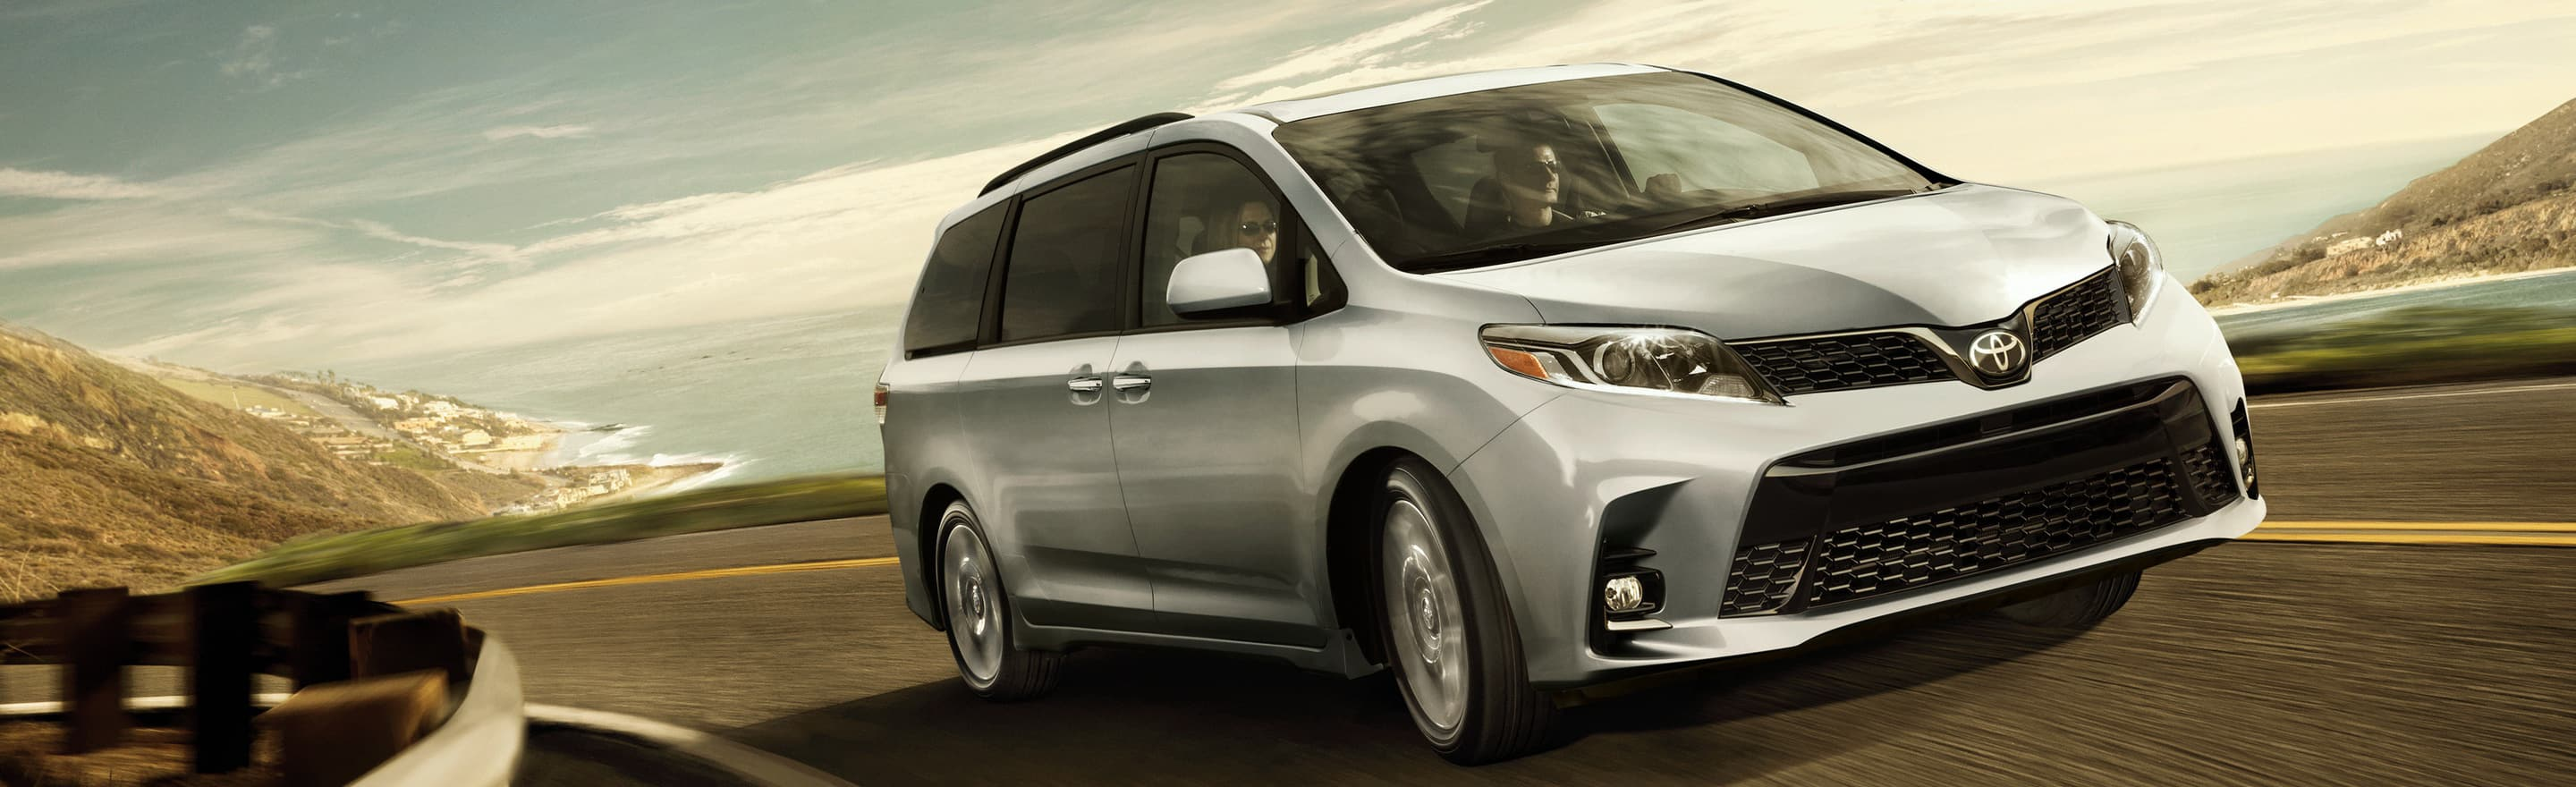 Explore The New 2019 Toyota Sienna At Ganley Toyota Today